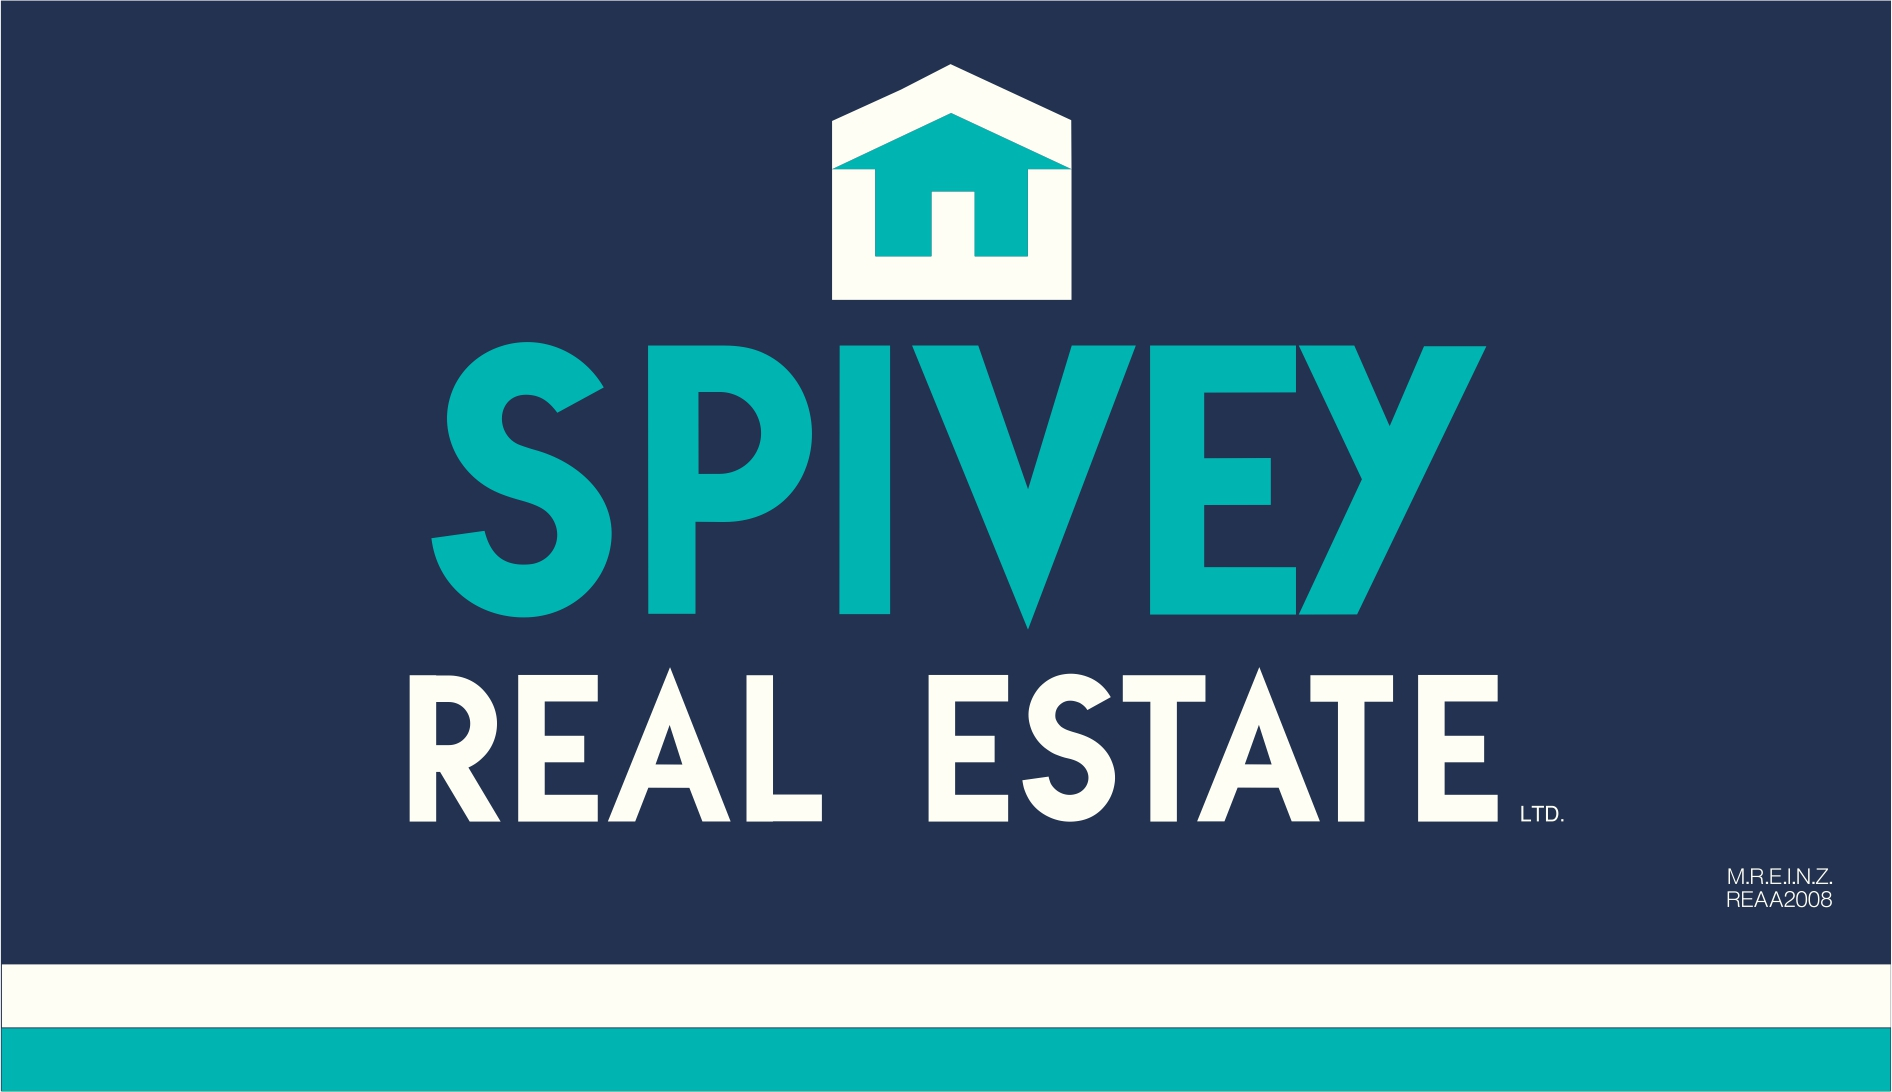 Spivey Real Estate